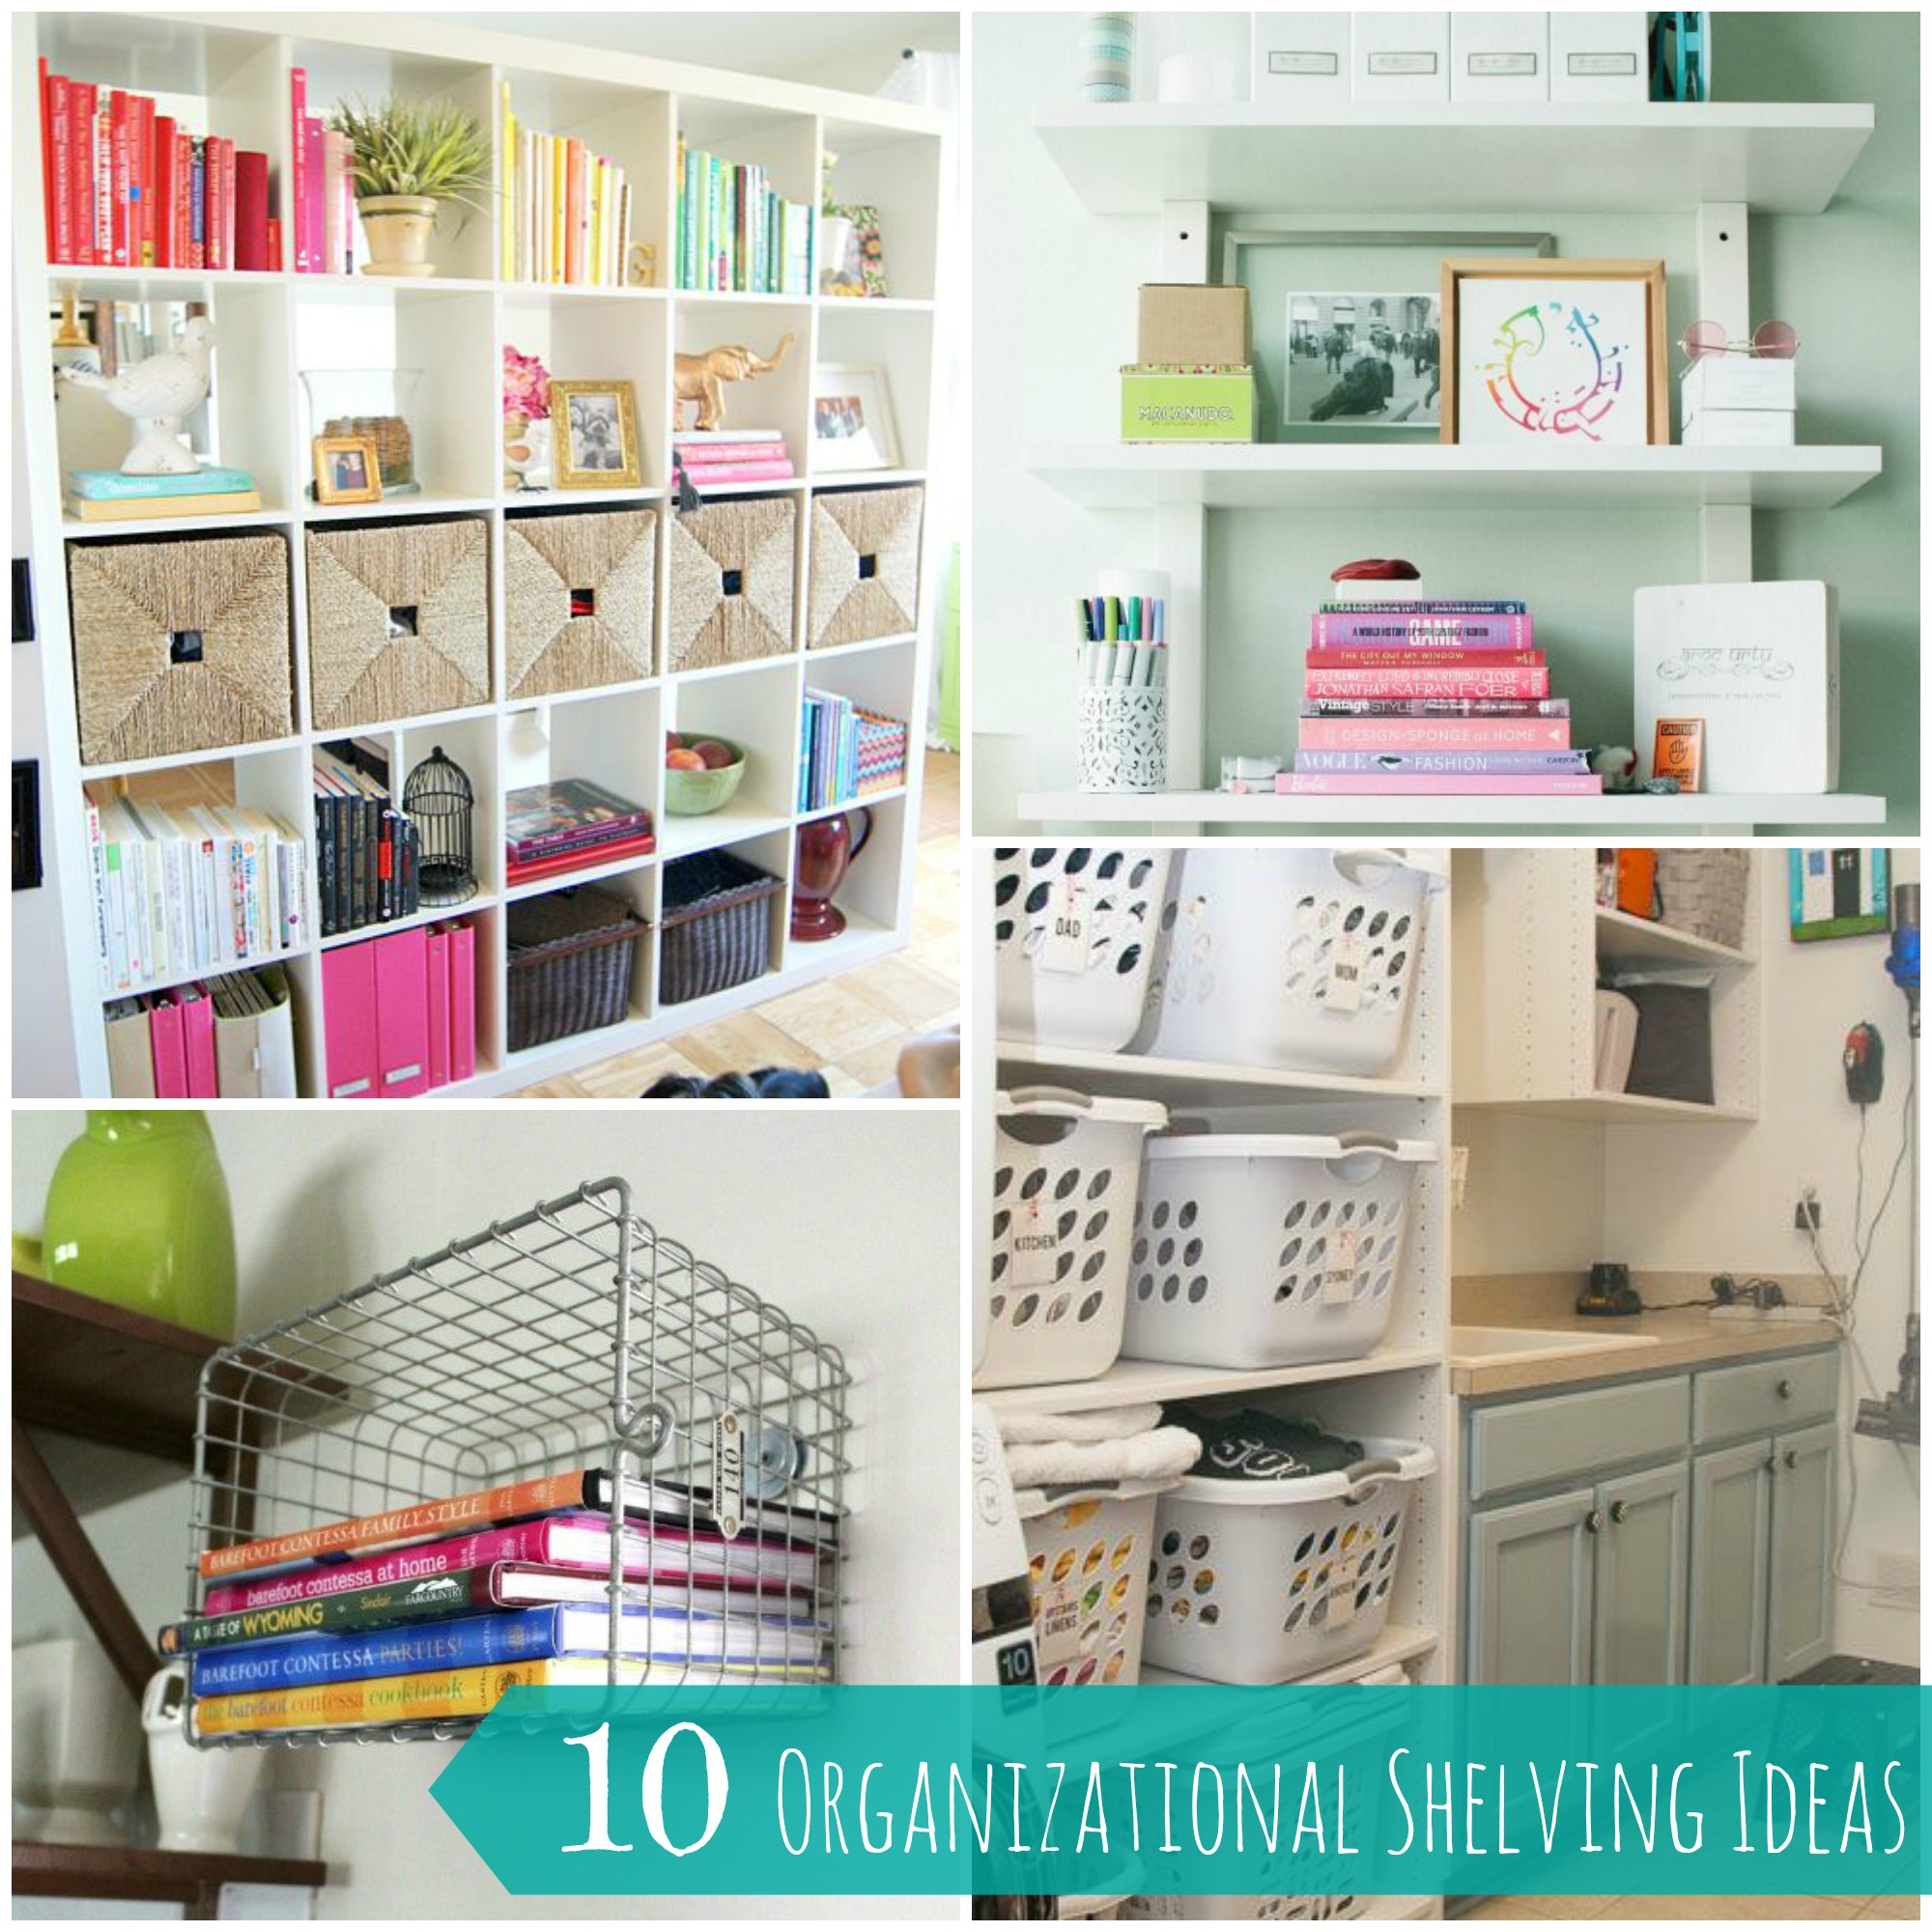 Easy And Creative Shelving Organization Ideas For Your Home